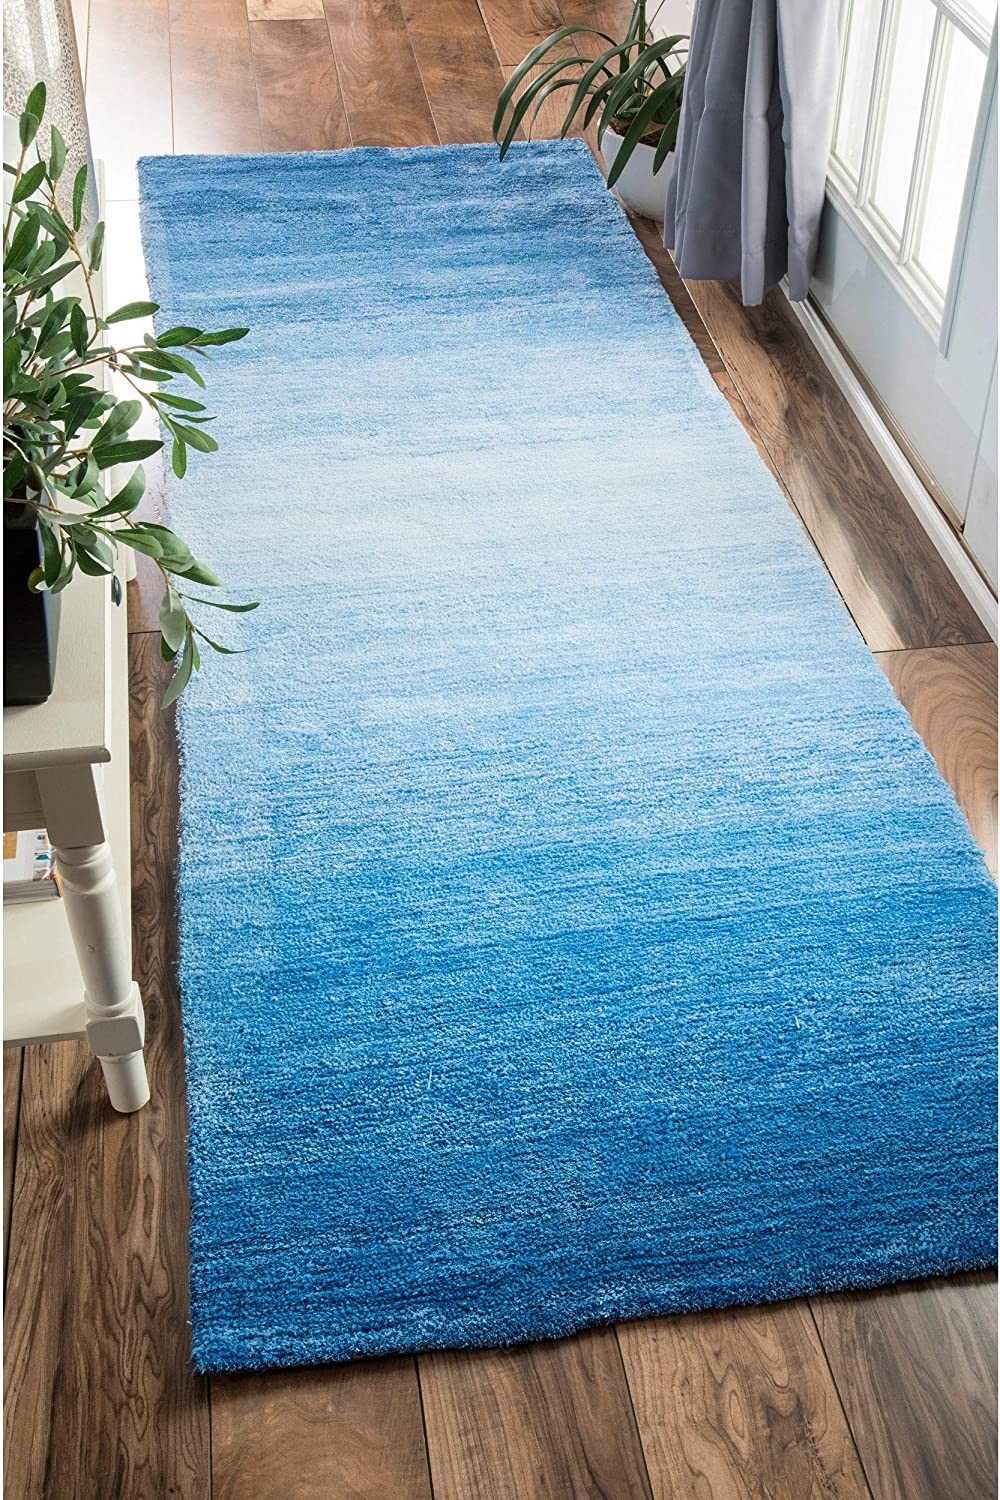 nuLOOM Bernetta San Antonio Mall Hand Tufted Ombre Cash special price Runner Blue Rug 2' x 8' 6